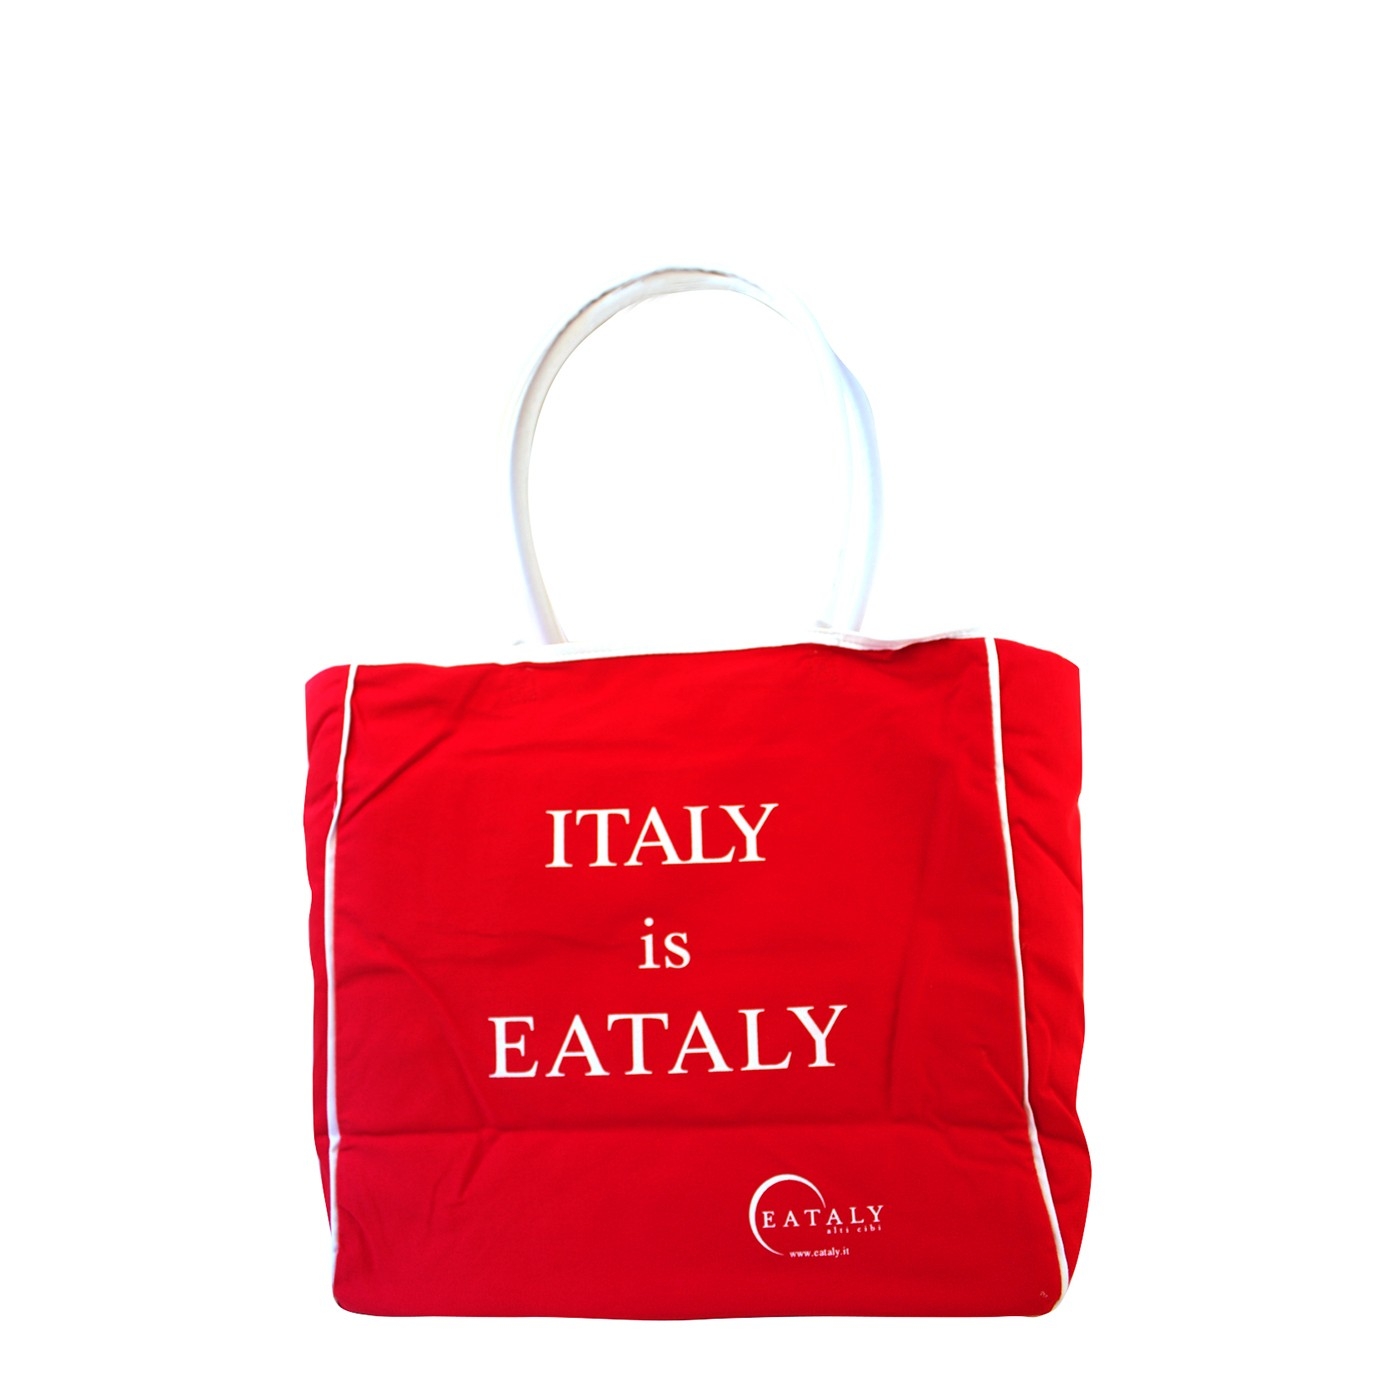 Italy is Eataly Zipper Tote Bag - Red